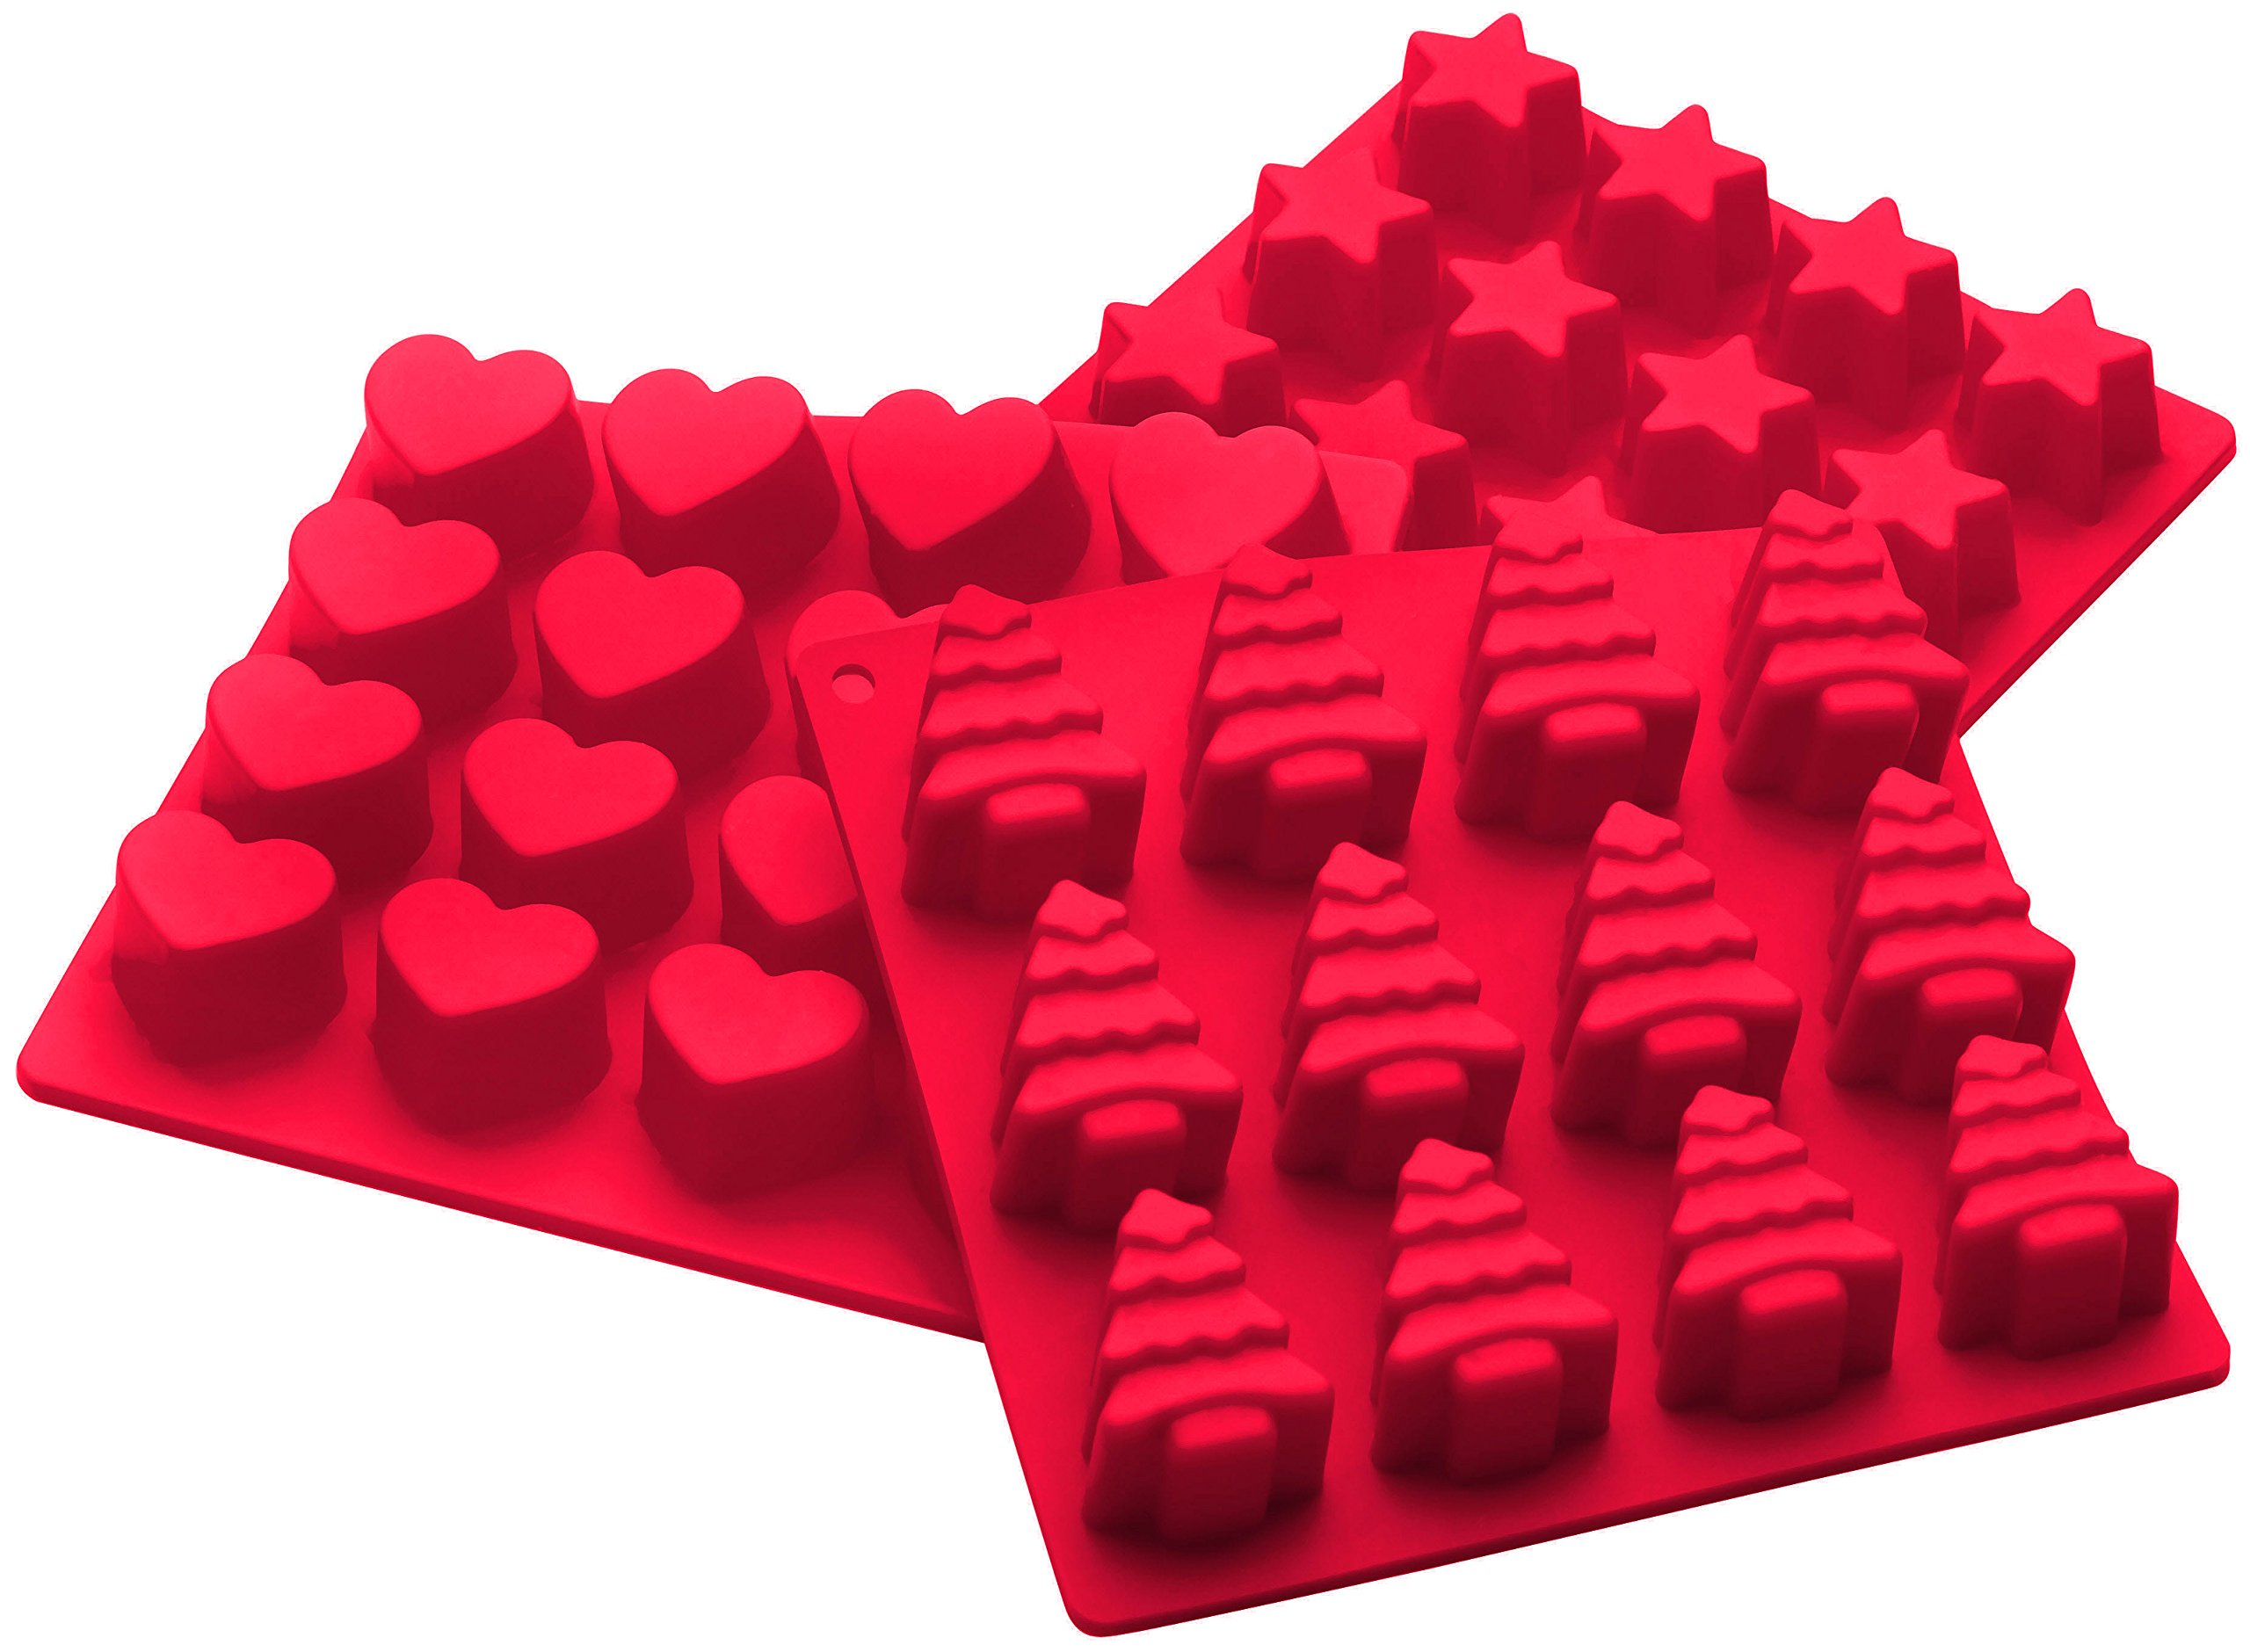 StarPack Premium Silicone Christmas Candy Molds (3 Pack) High Heat Resistant to 600°F, Perfect for Holiday Candies, Chocolates, Soap, Gummies, and Ice by StarPack Home